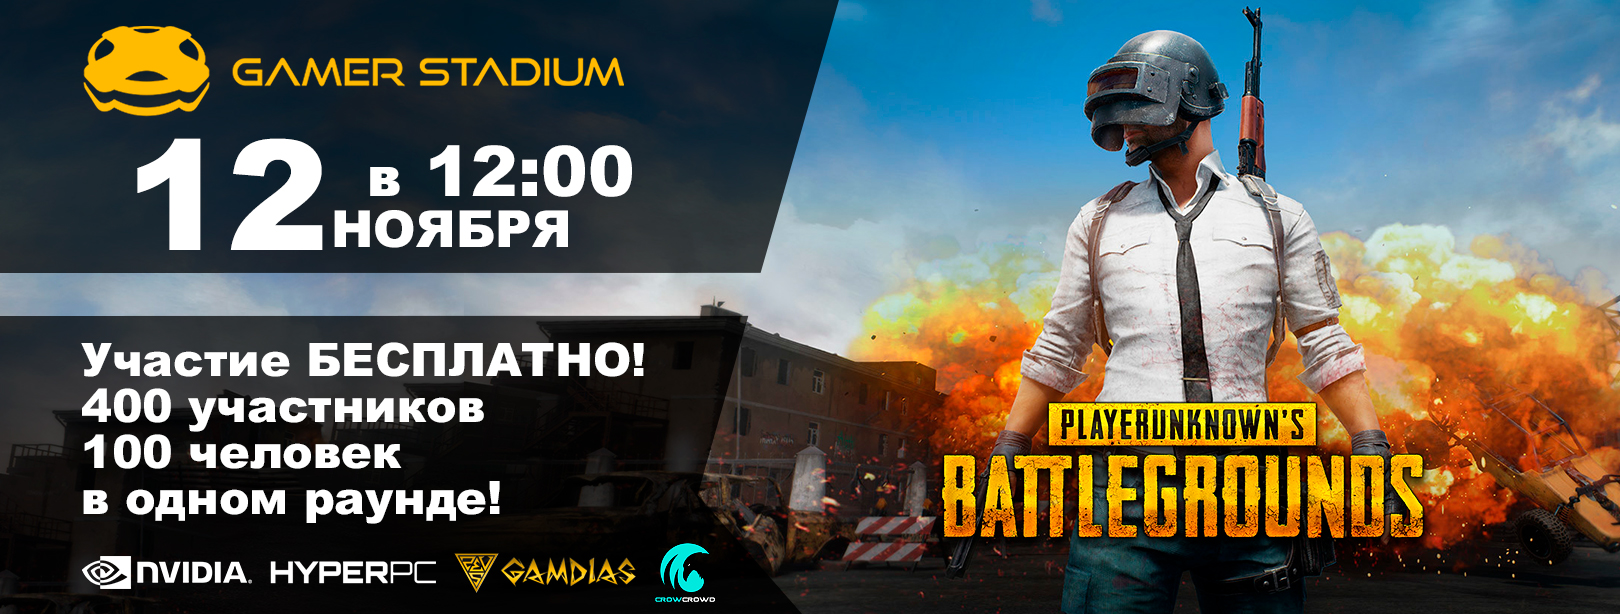 main playerunkowns battlgrounds